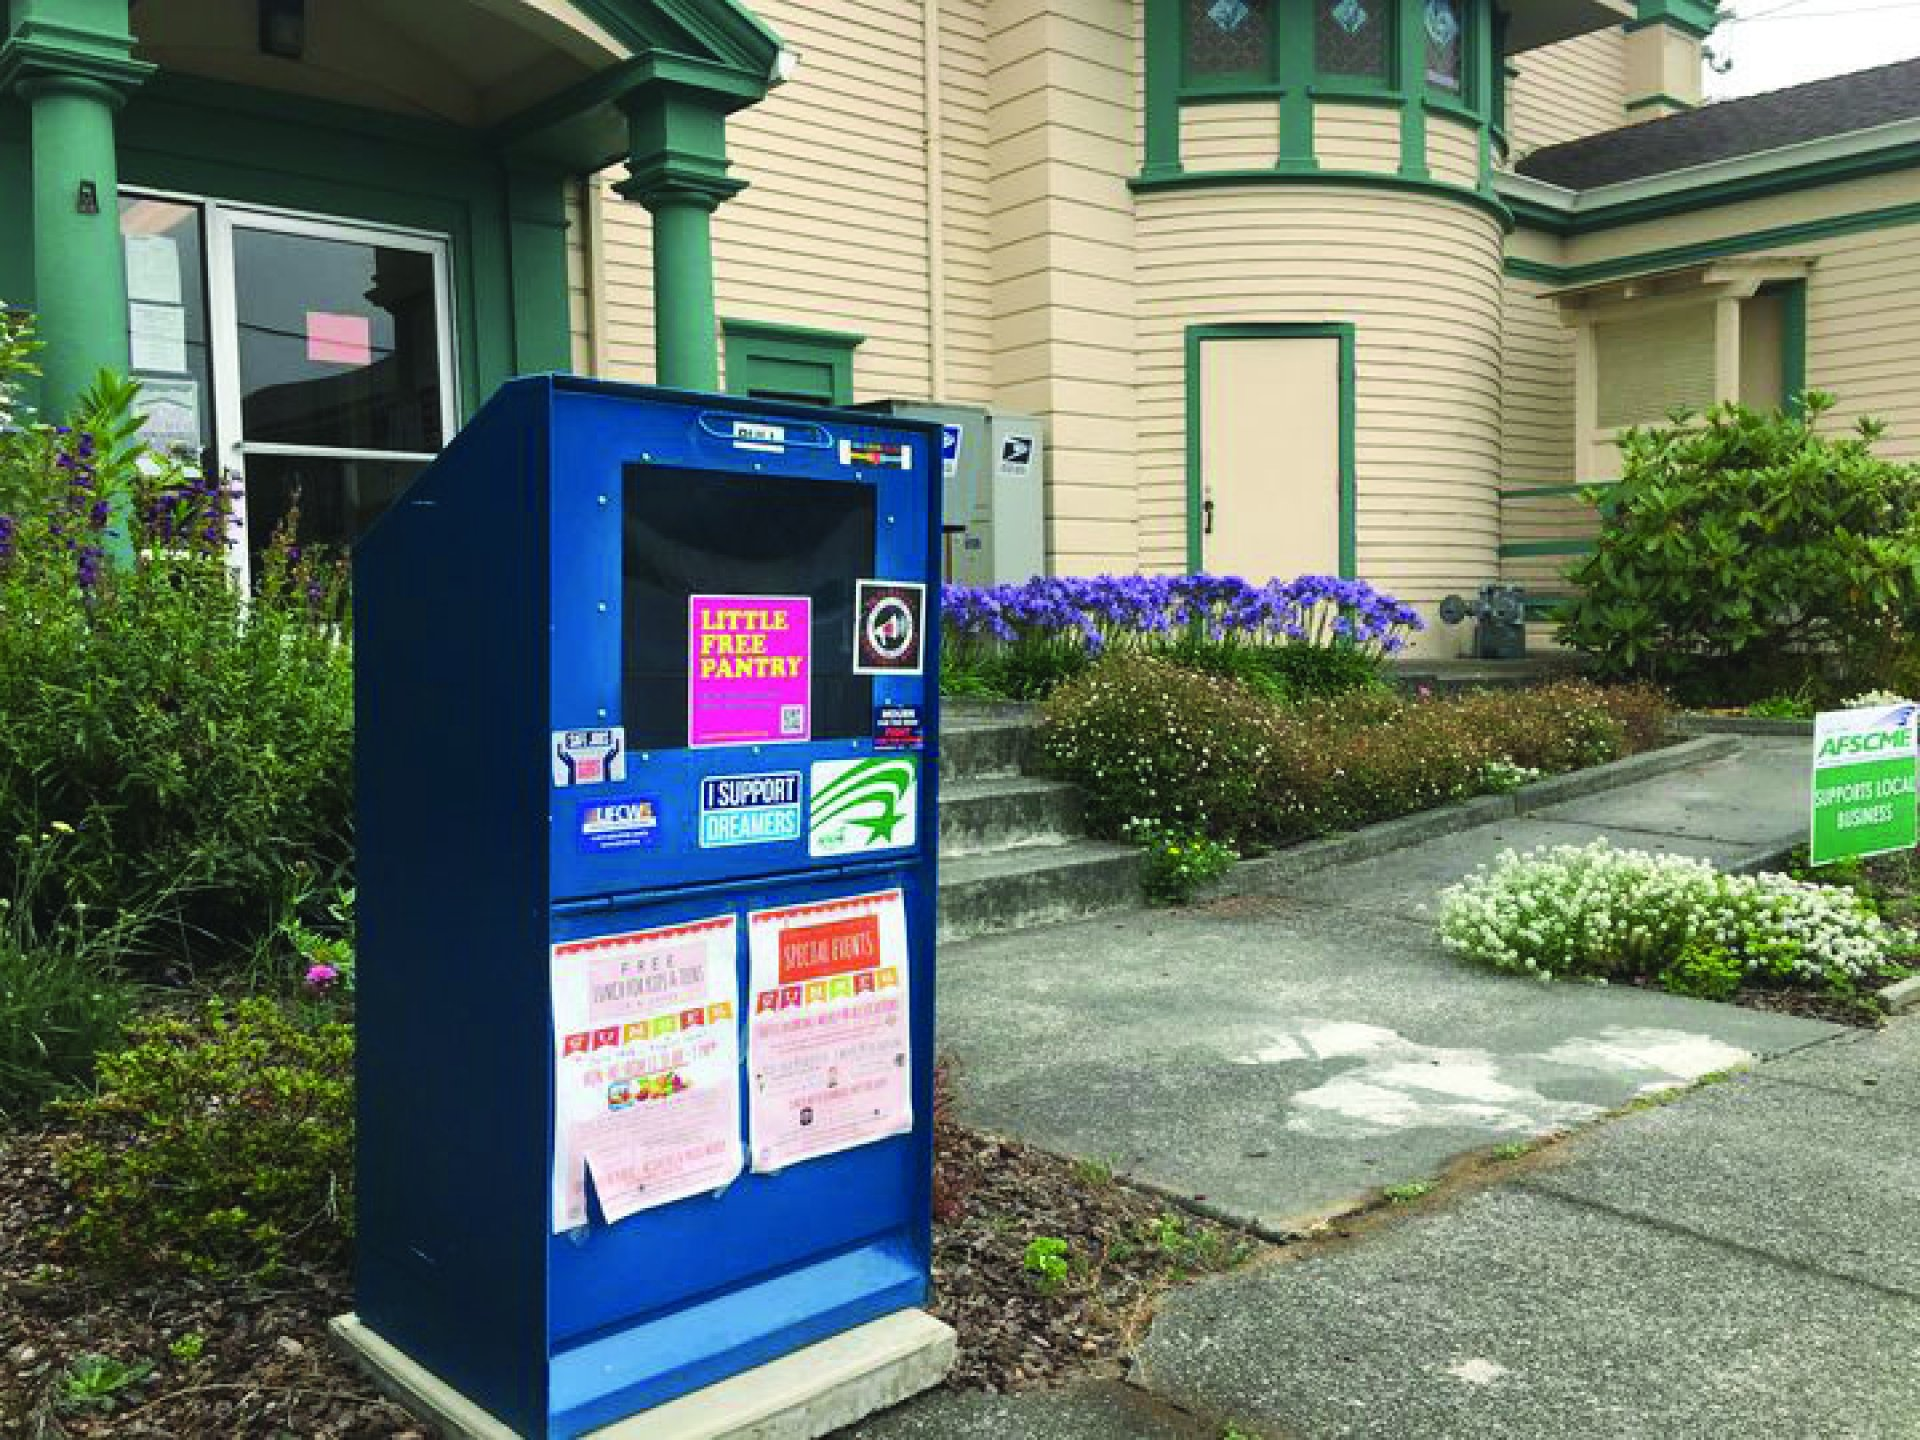 The Little Free Pantry Program Helps Build Community by Providing Easy Access to Food, Hygiene Products and Condoms. | Photo courtesy of Cooperation Humboldt